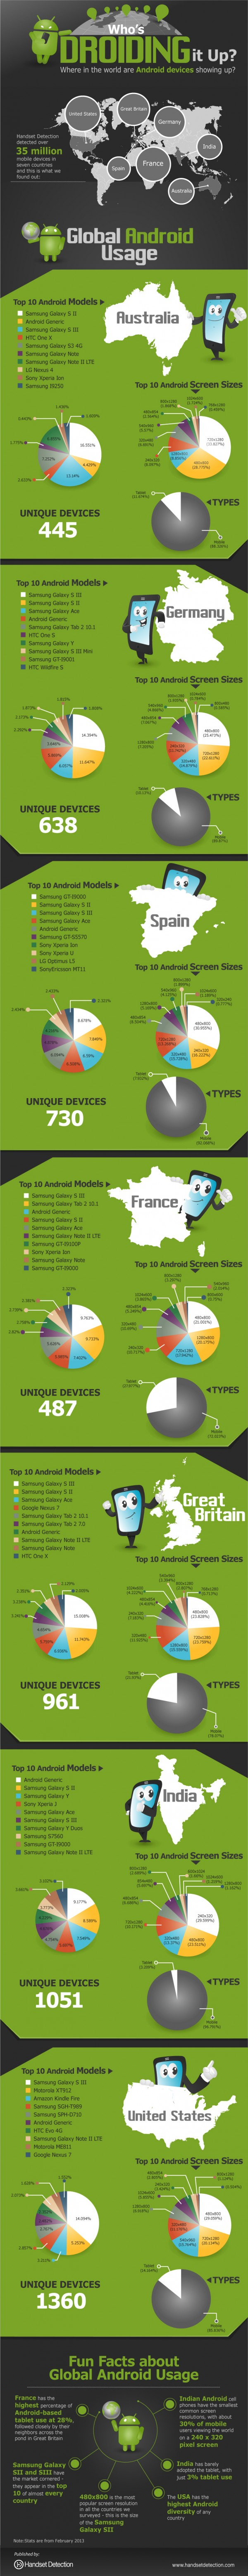 Android stats Android report Android 2013 Android sales Android usage Use android Android 2013 use Android devices 2013 Android phone 2013 Android infographics best infographics 2013